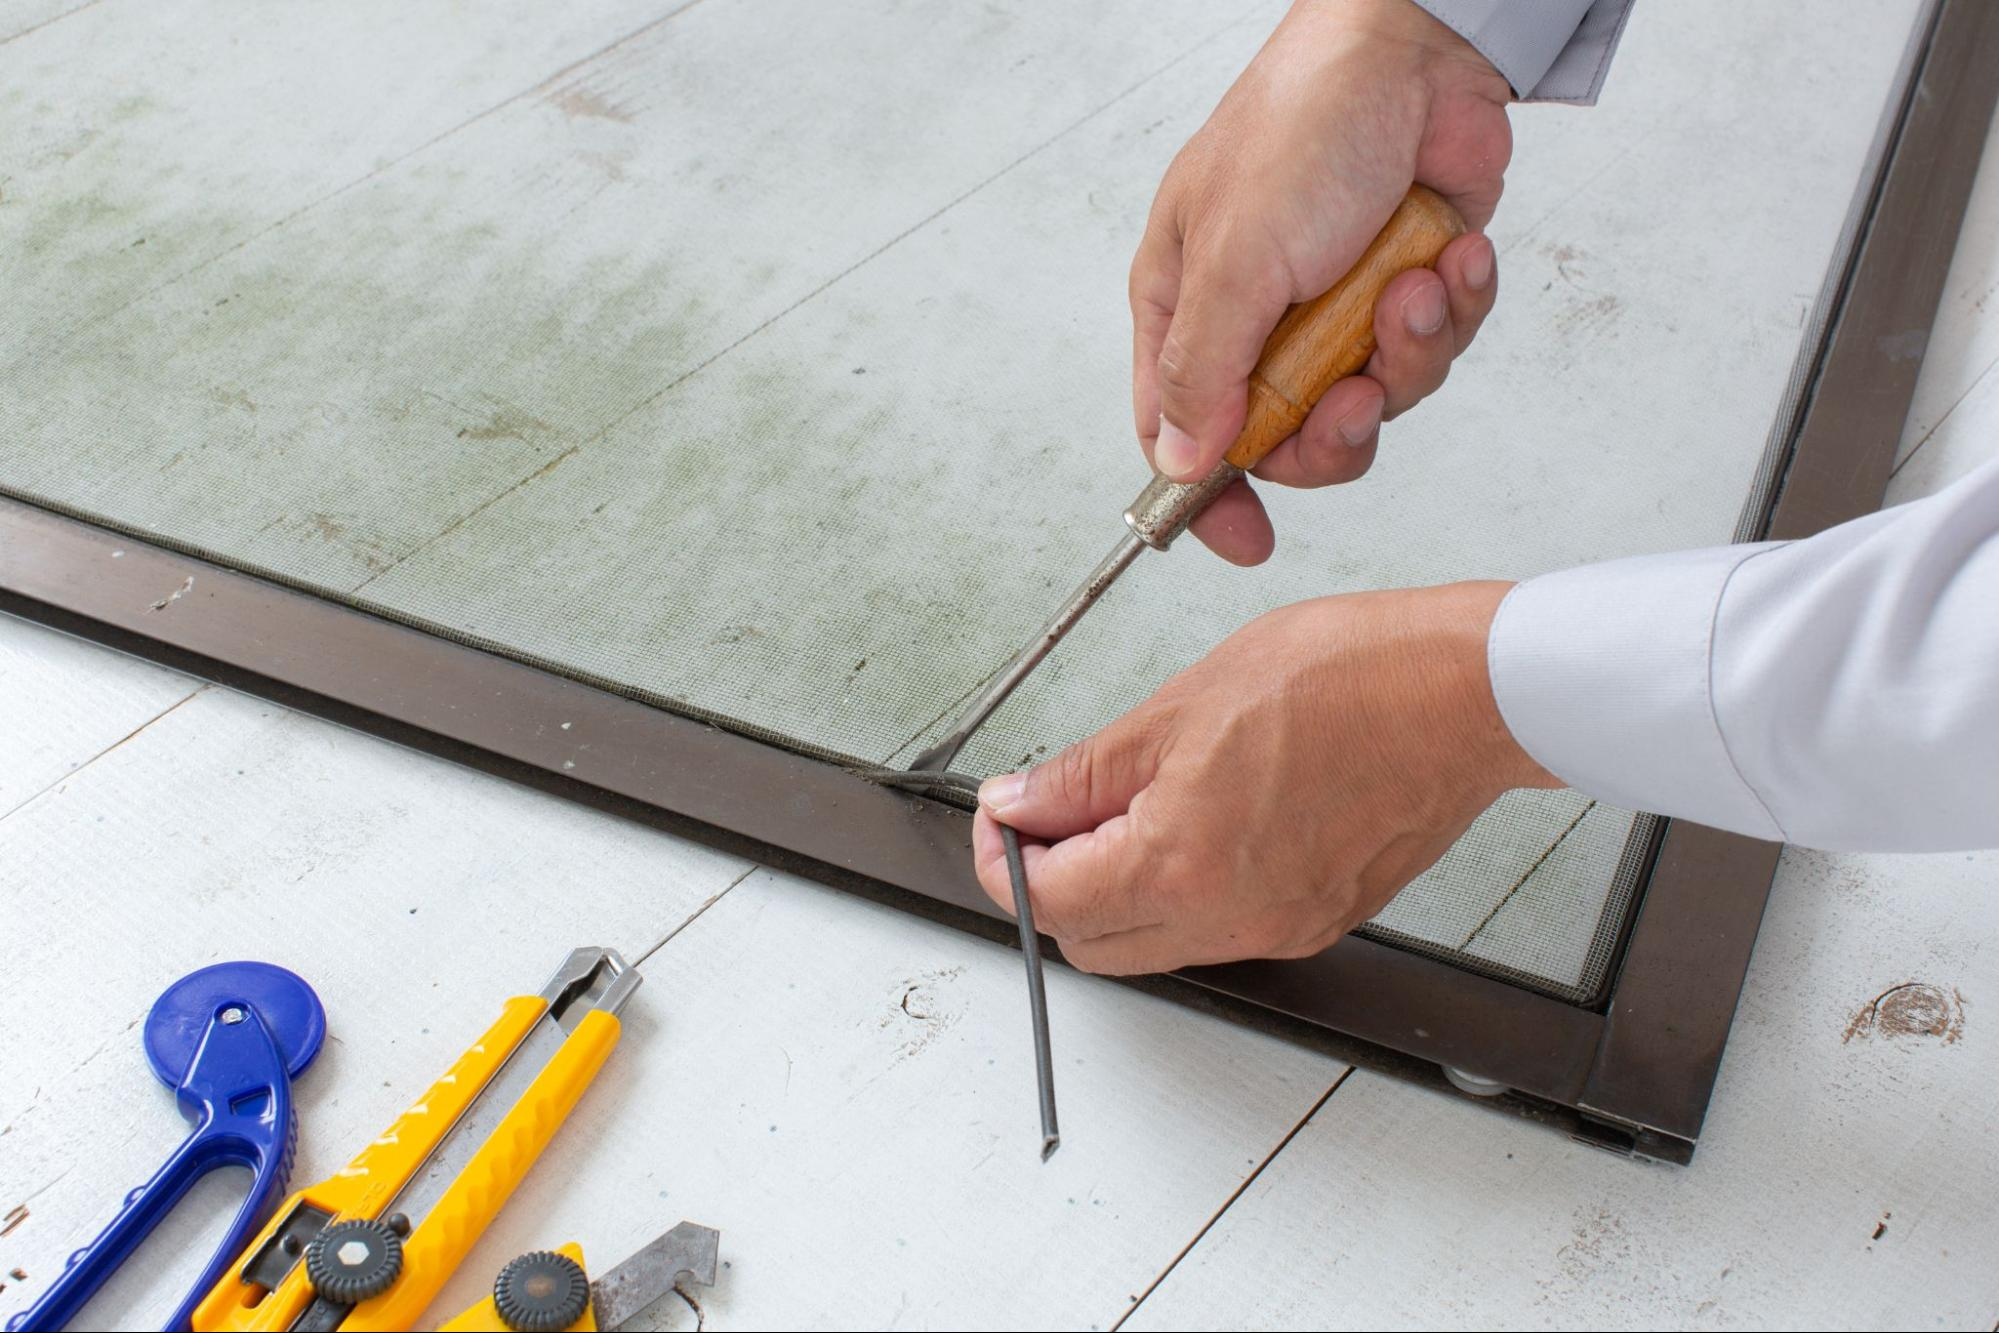 Close up of a man's hands removing the old spline of a screen door using a screwdriver